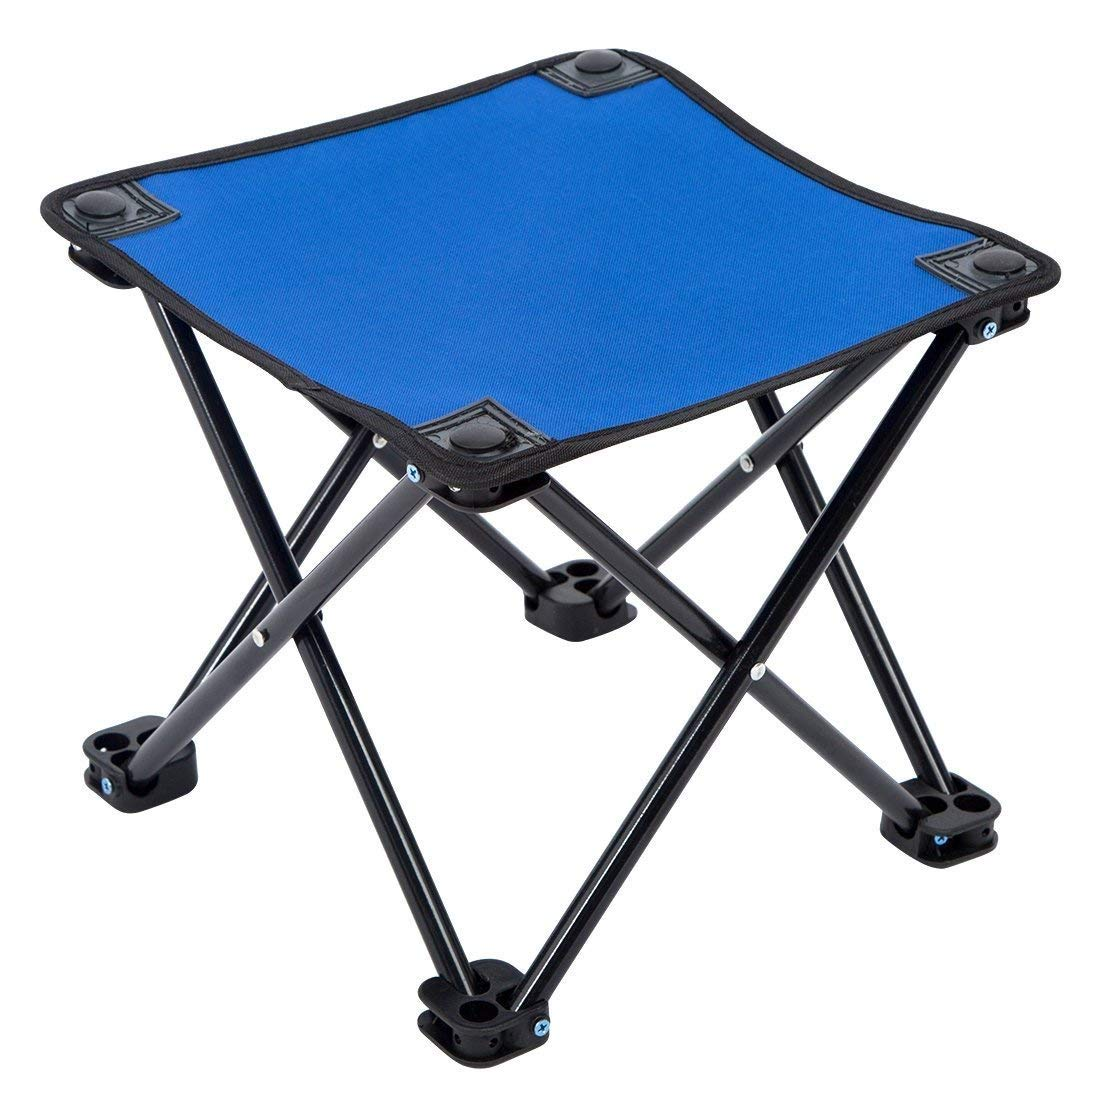 ROOKLY Mini Portable Folding Stool Slacker Chair Outdoor Folding Chair for Camping Fishing Travel Hiking Garden Beach Quickly Fold Chair Summer Oxford Cloth with Carry Bag